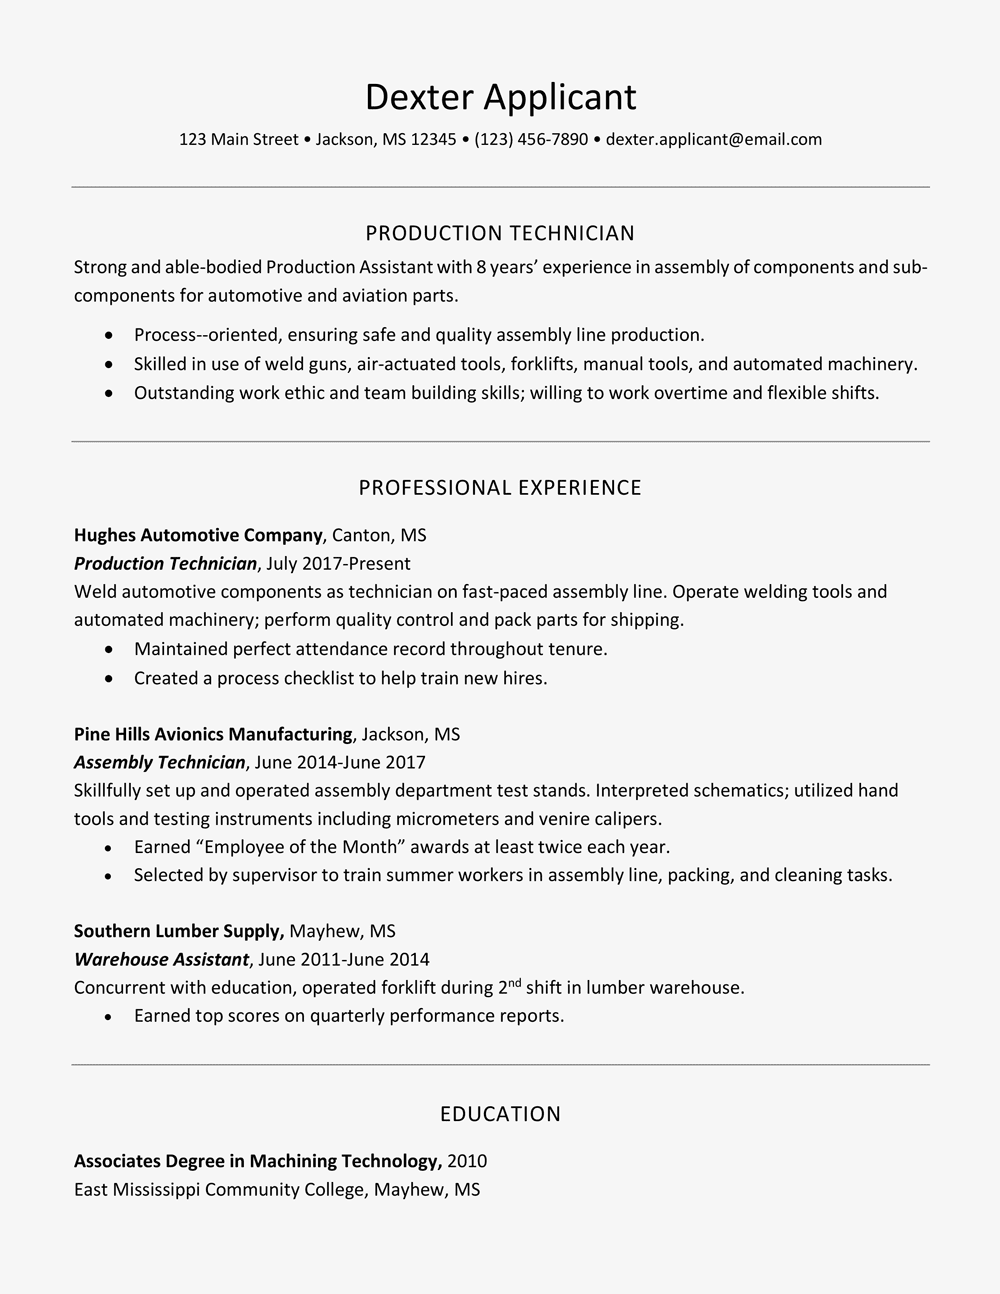 Create a Professional Resume